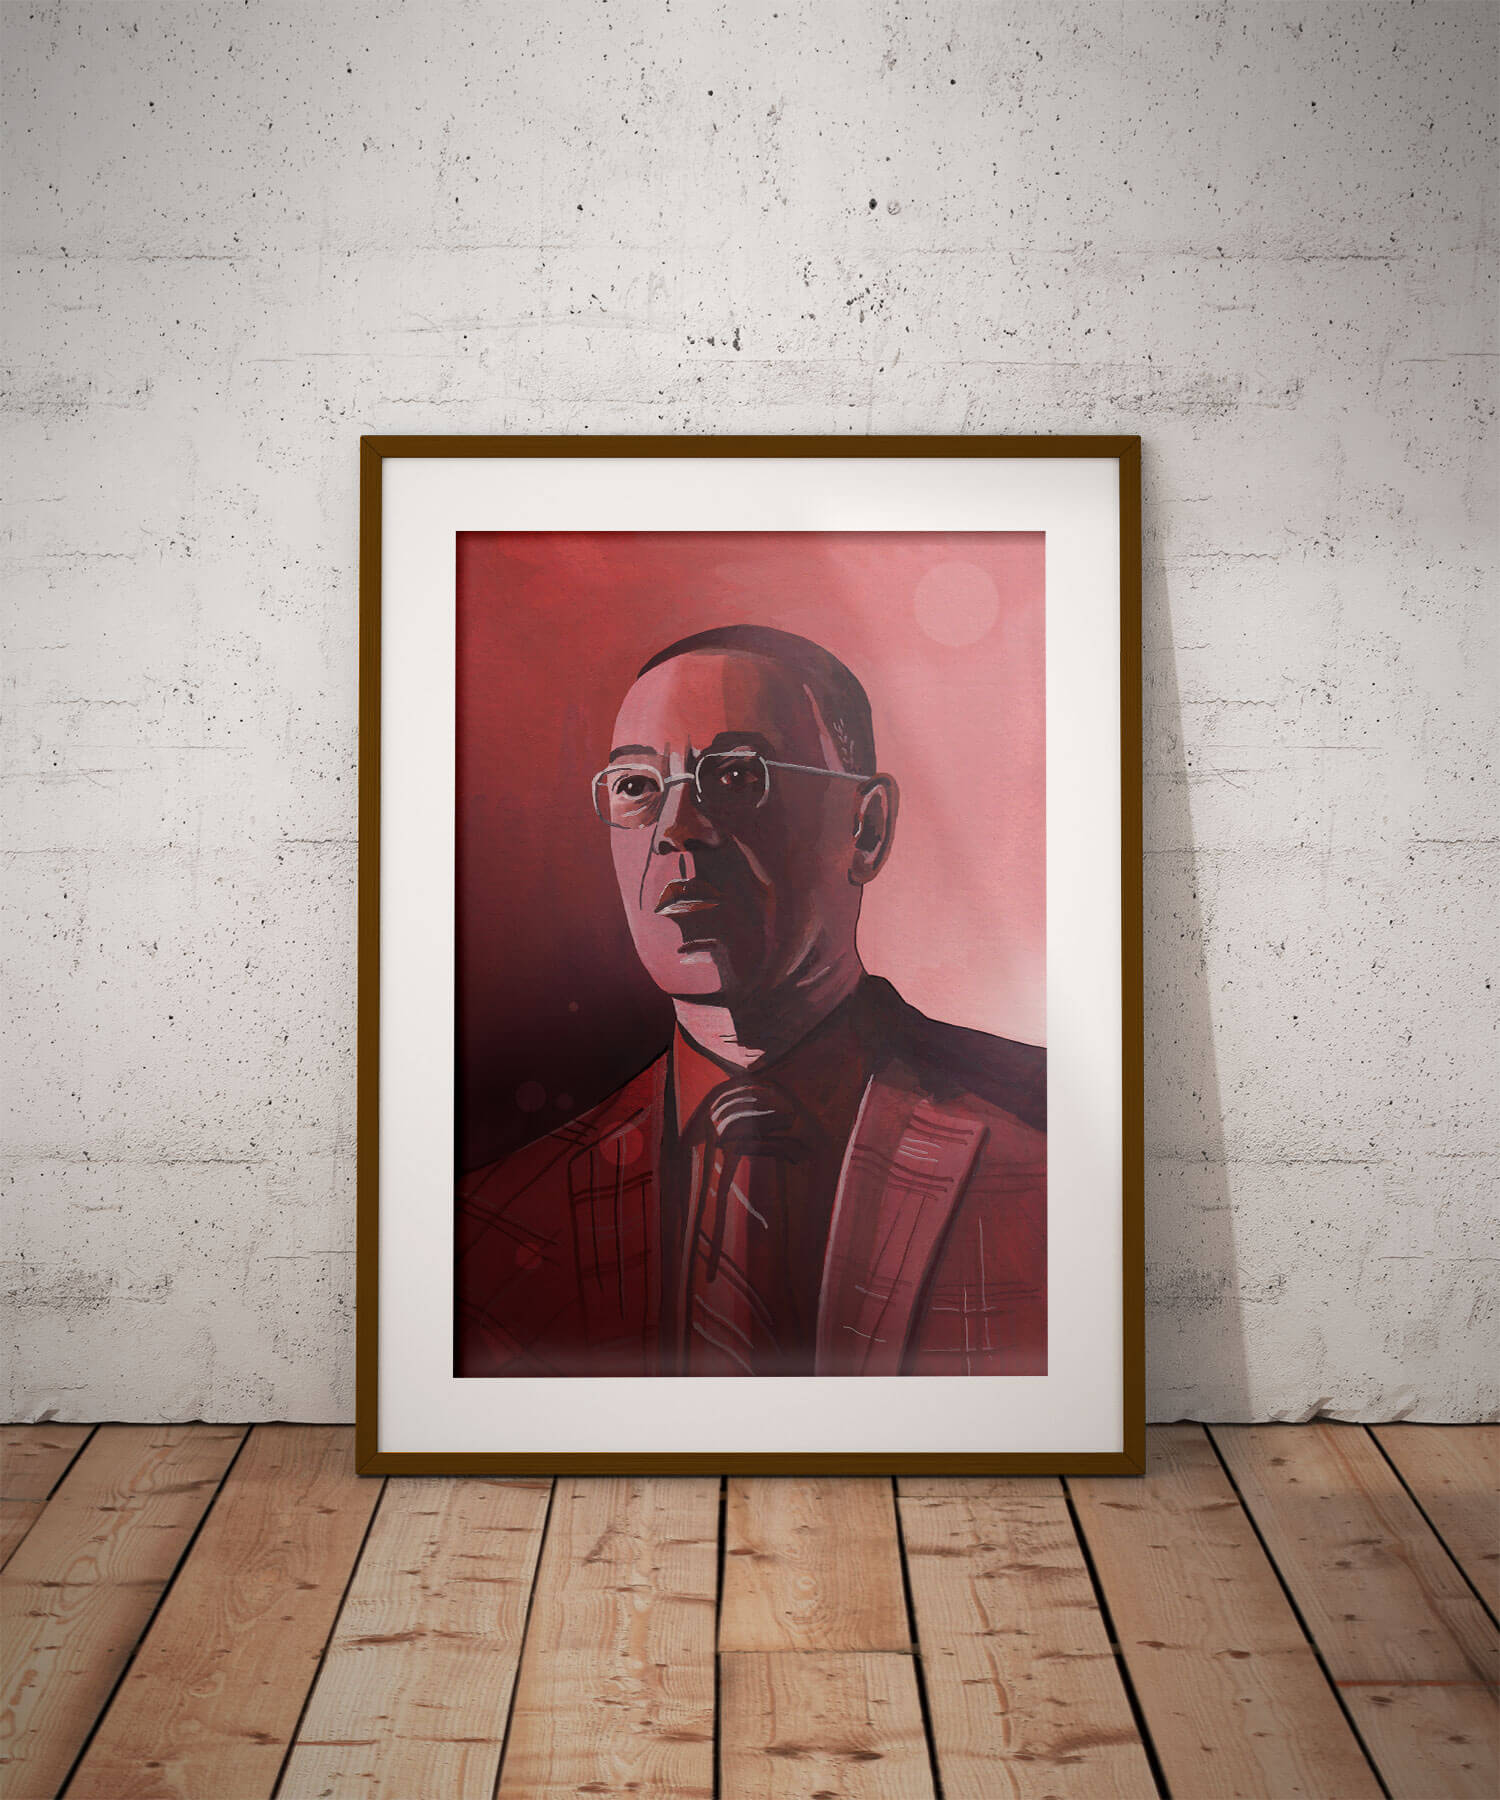 Buy the Gustavo Fring Art Print